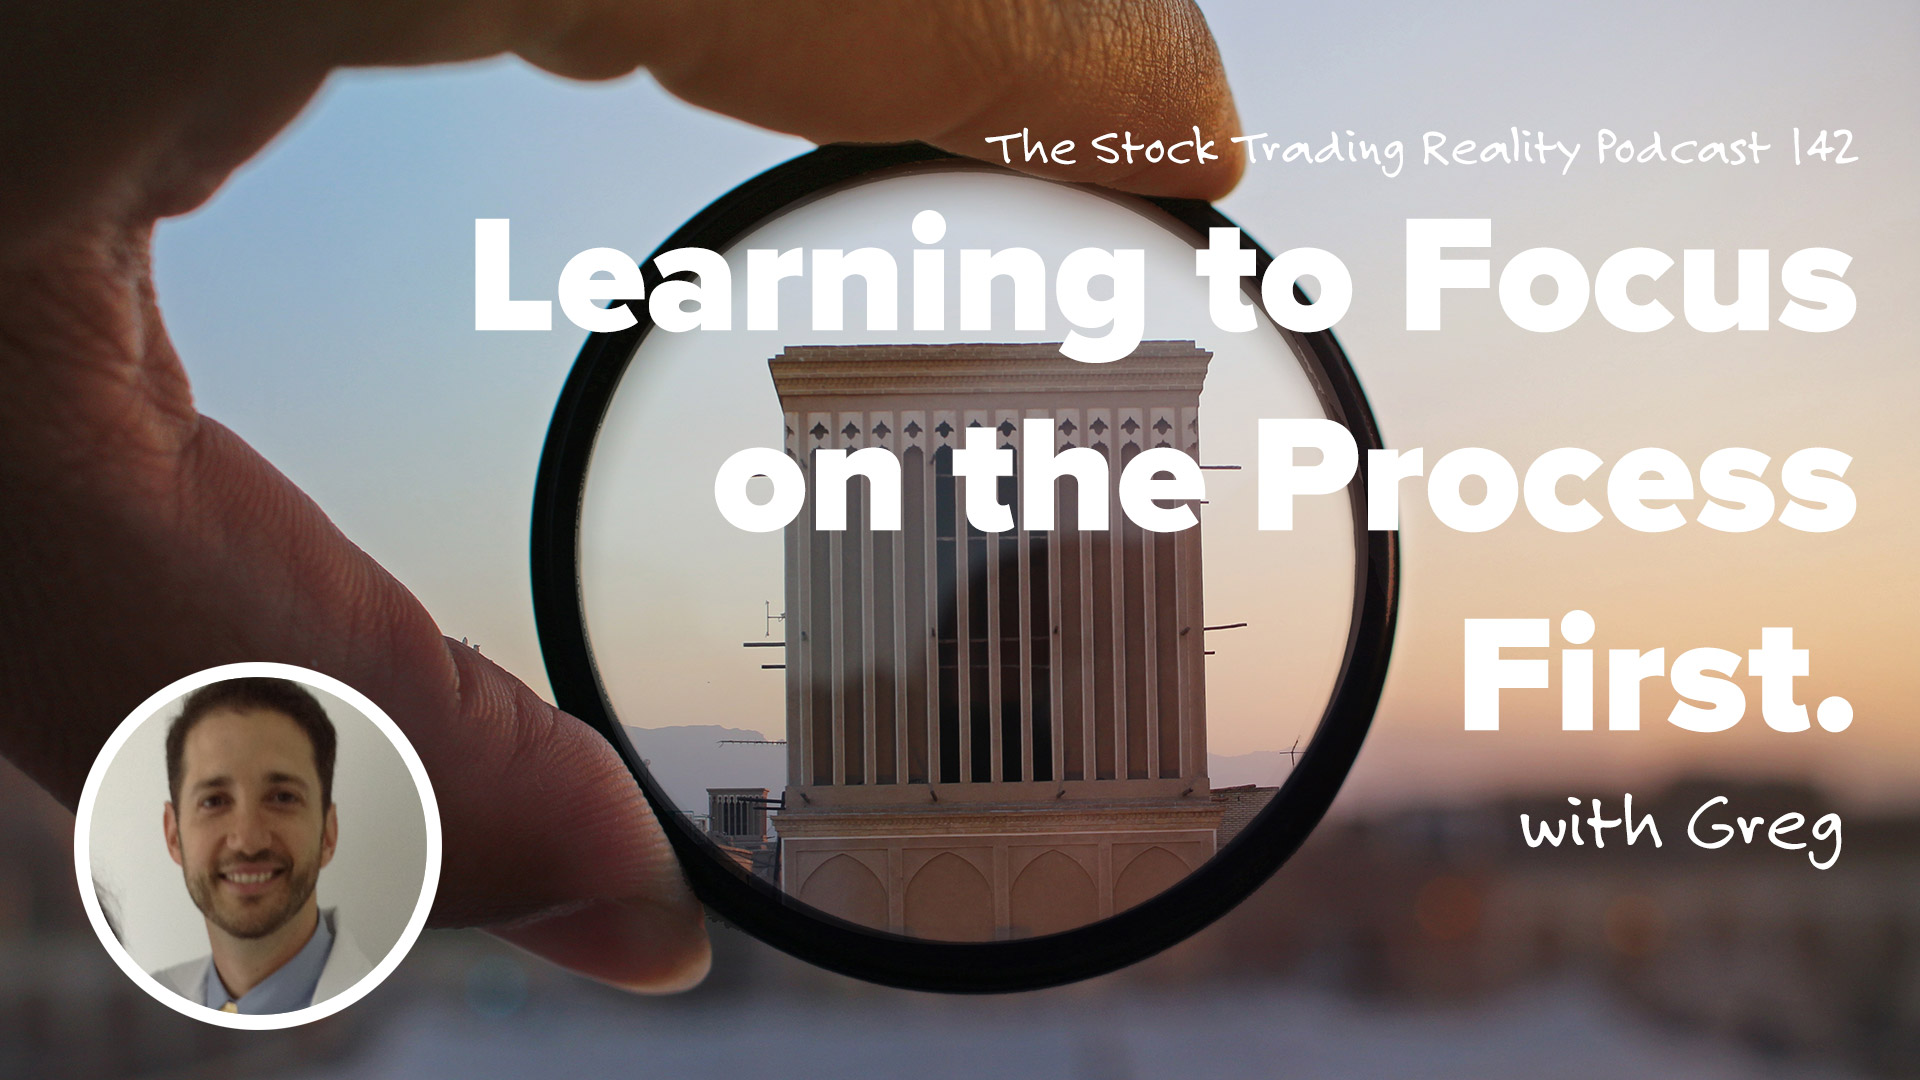 STR 142: Learning to Focus on the Process First.